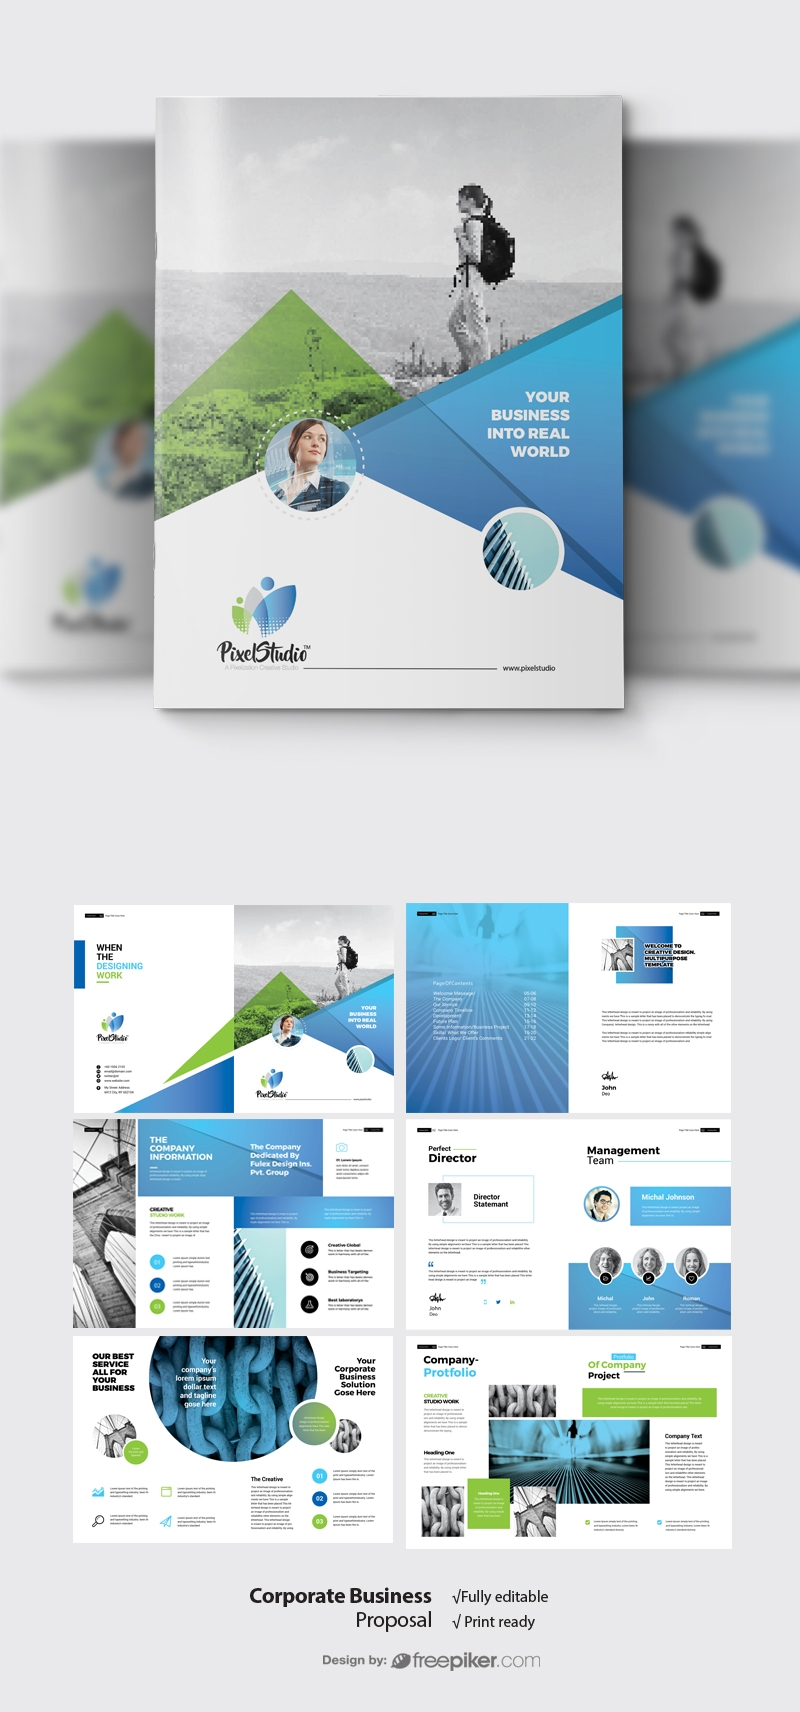 Corporate Business Project Proposal With Blue & Green